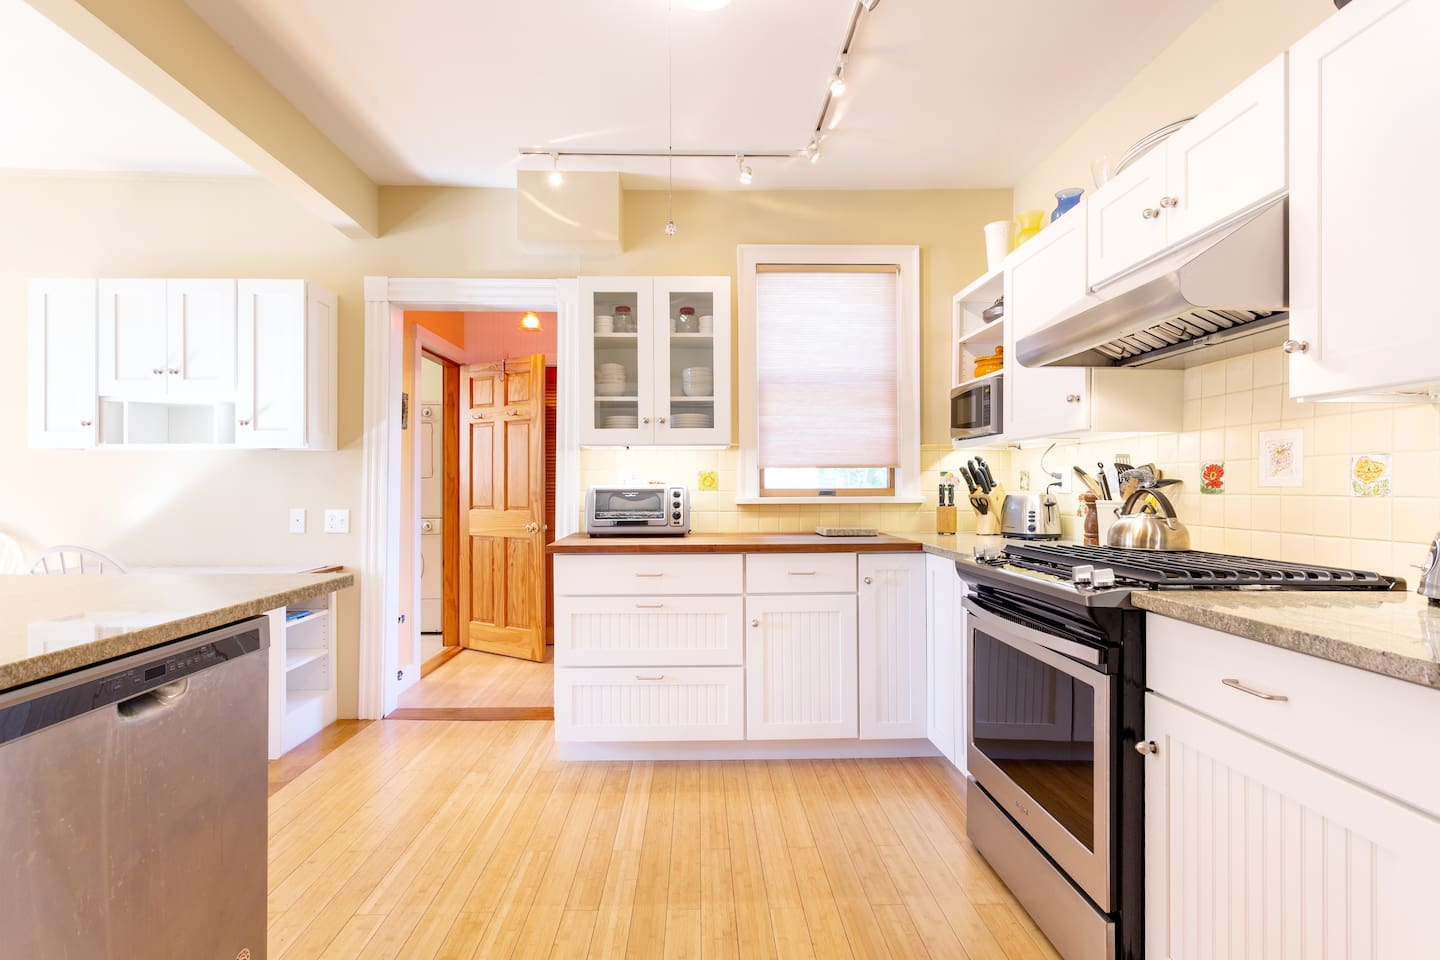 Newly renovated house and kitchen with top of the line appliances ready for your vacation!